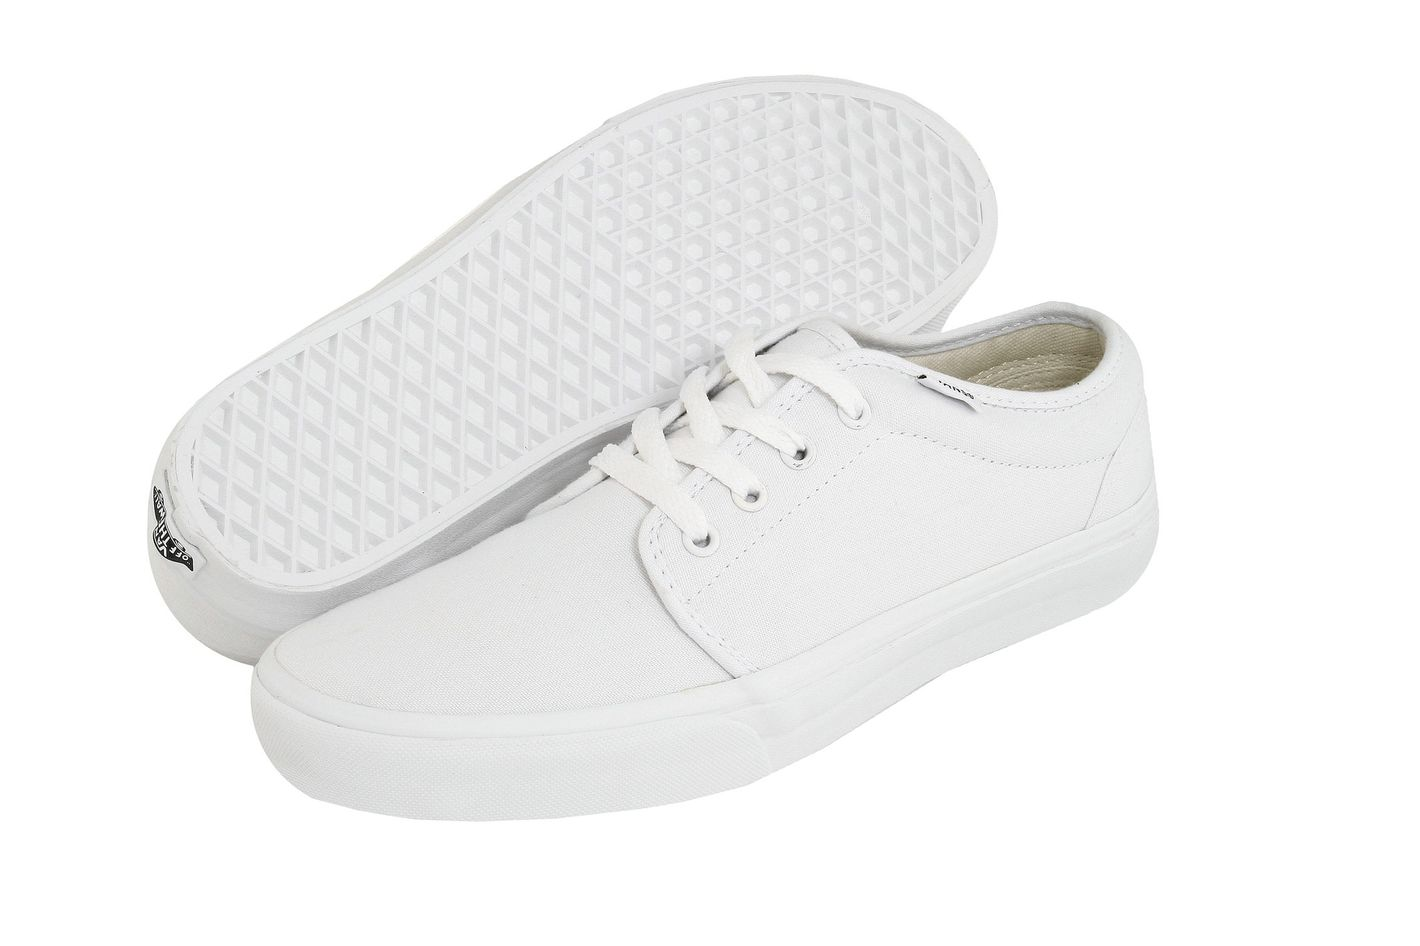 Cheap All White Vans Shoes